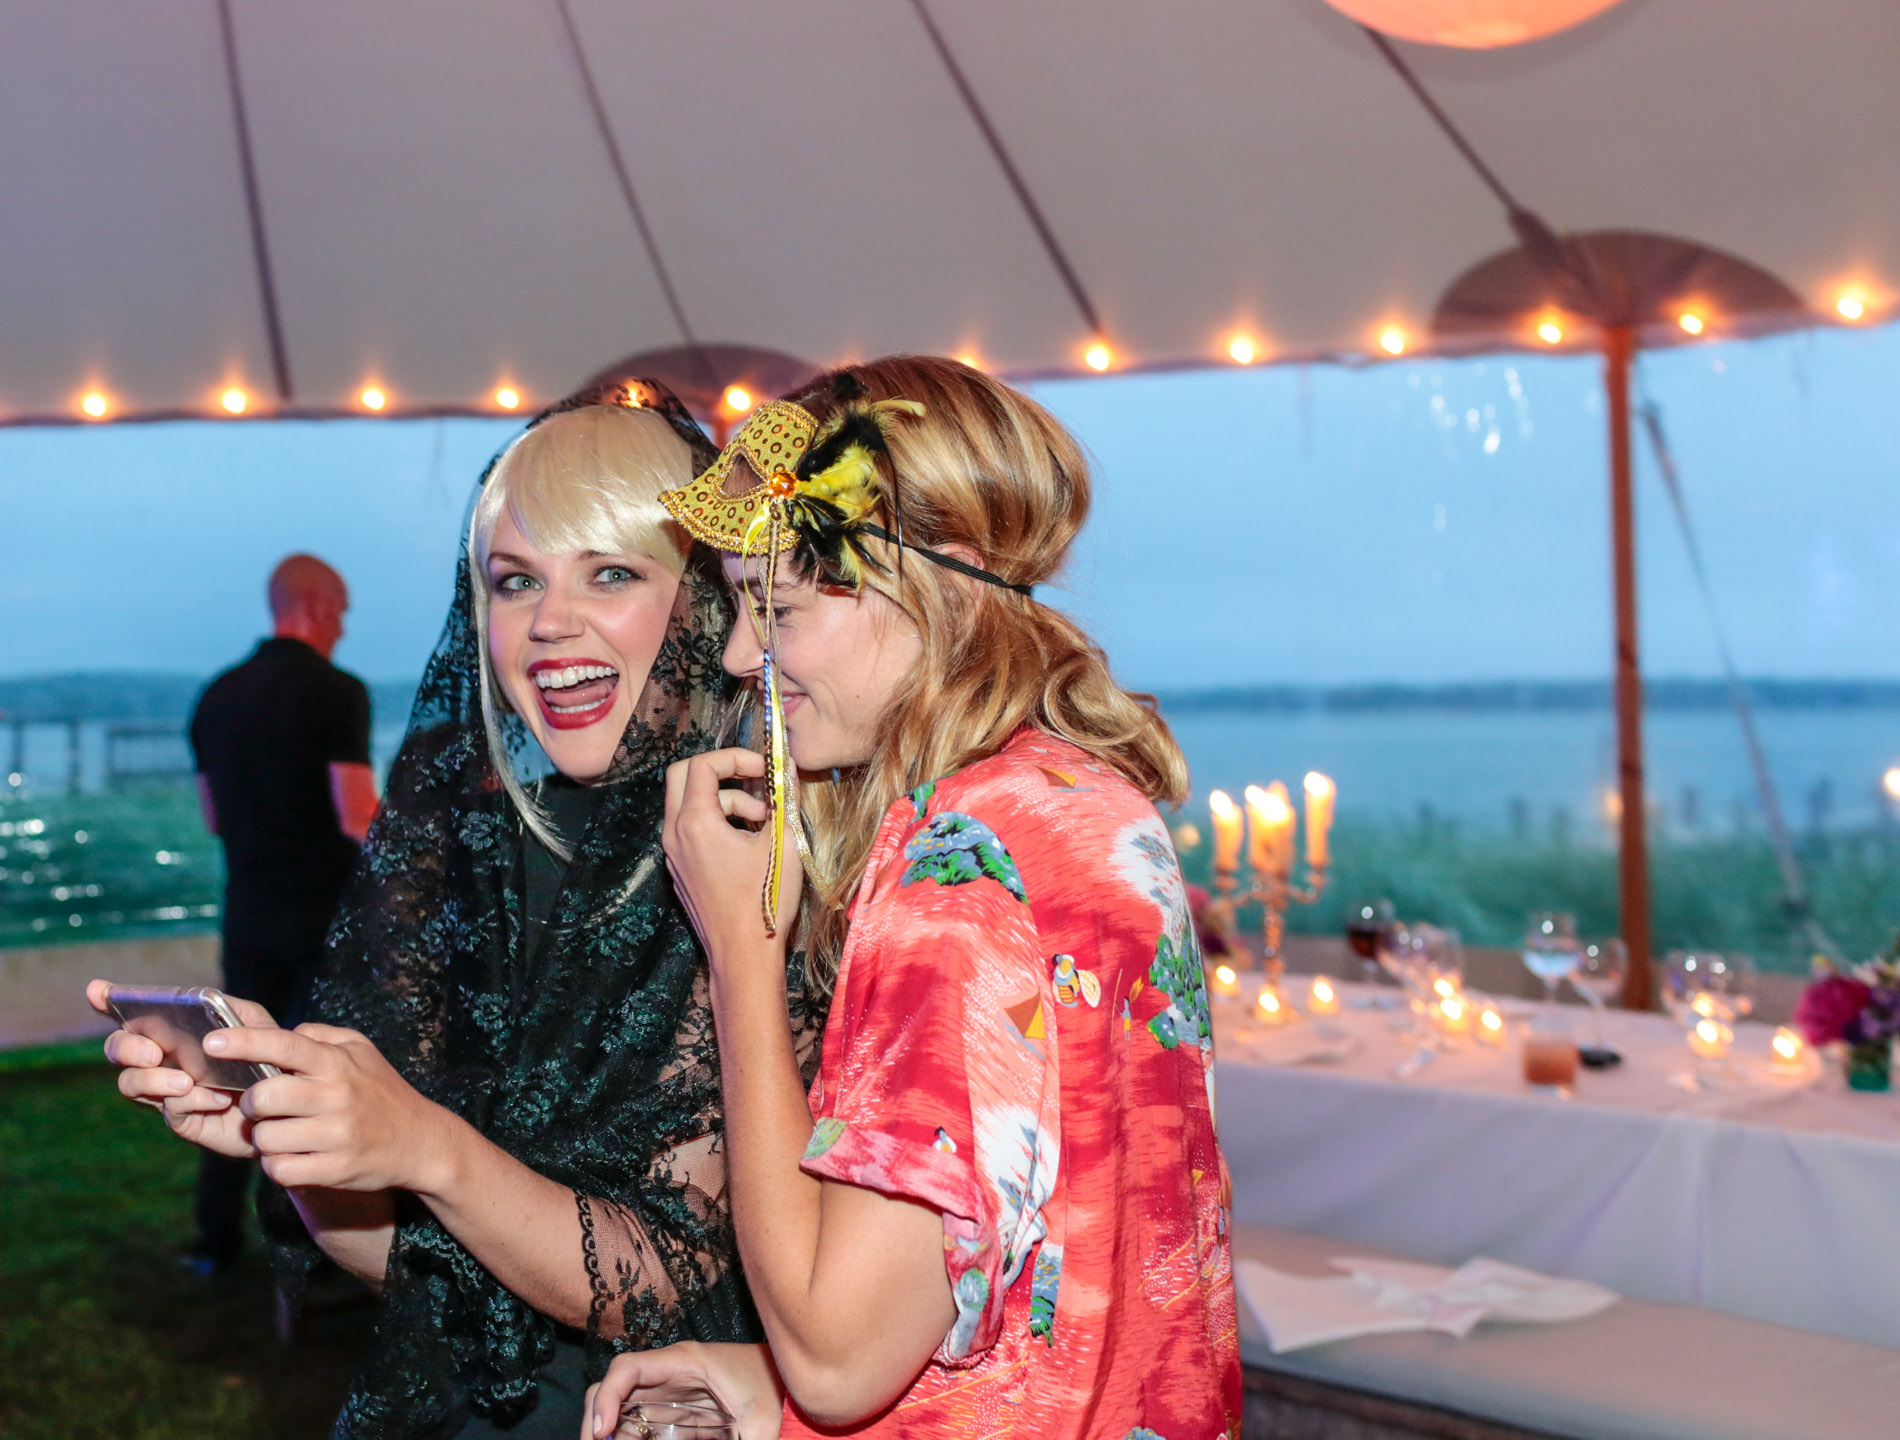 2eric_striffler_photography_event_party-13.jpg